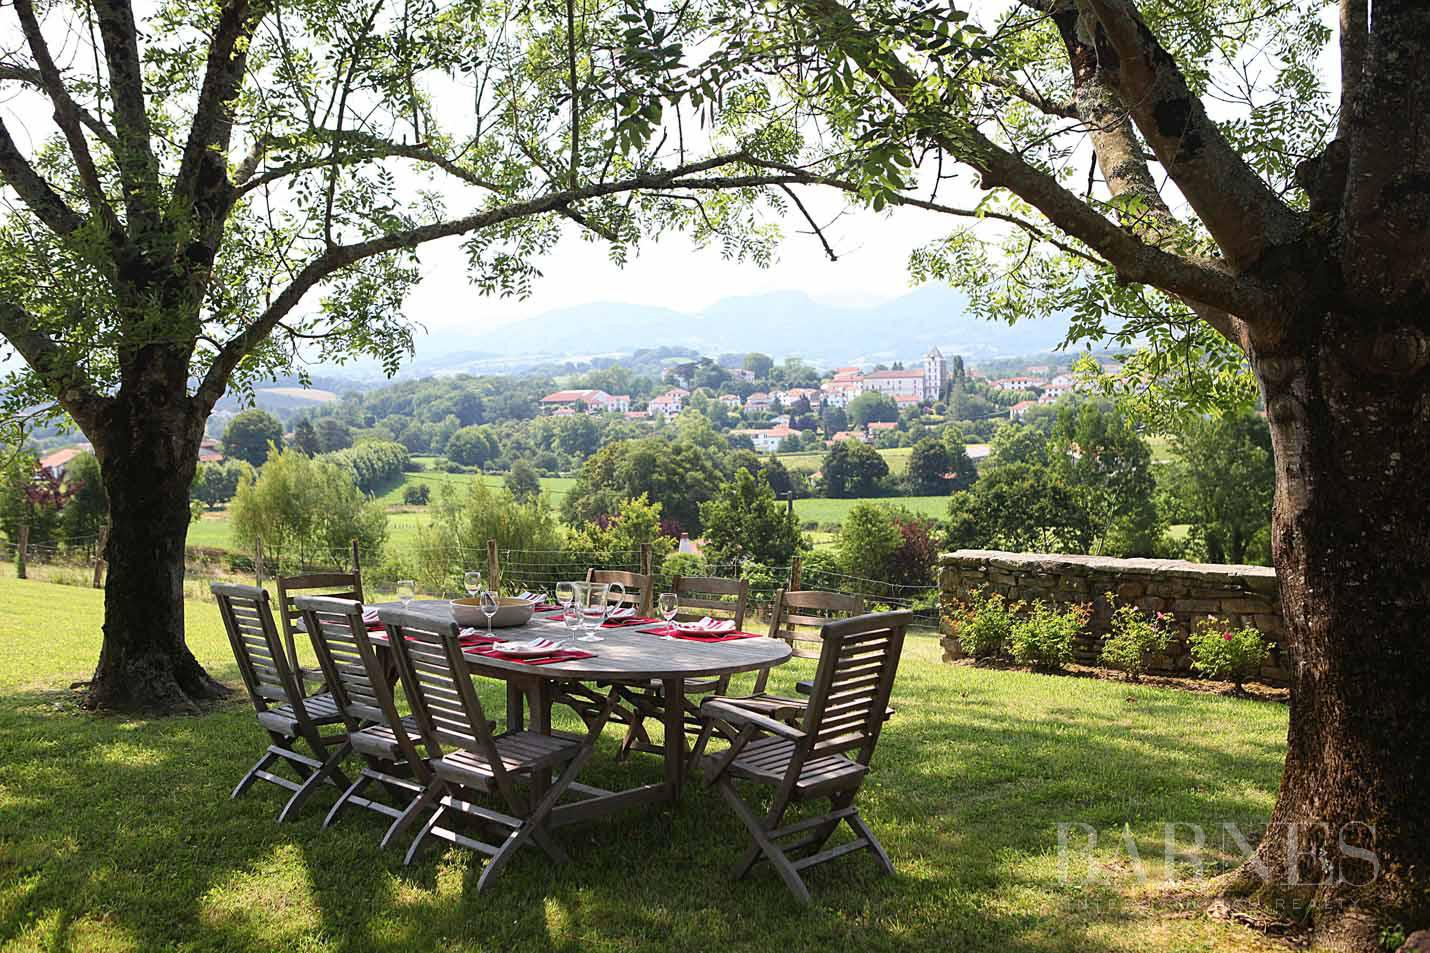 SARE, 20 MINUTES FROM SAINT JEAN DE LUZ, BASQUE STYLE FARMHOUSE WITH HEATED POOL, PANORAMIC MOUNTAIN VIEW picture 1